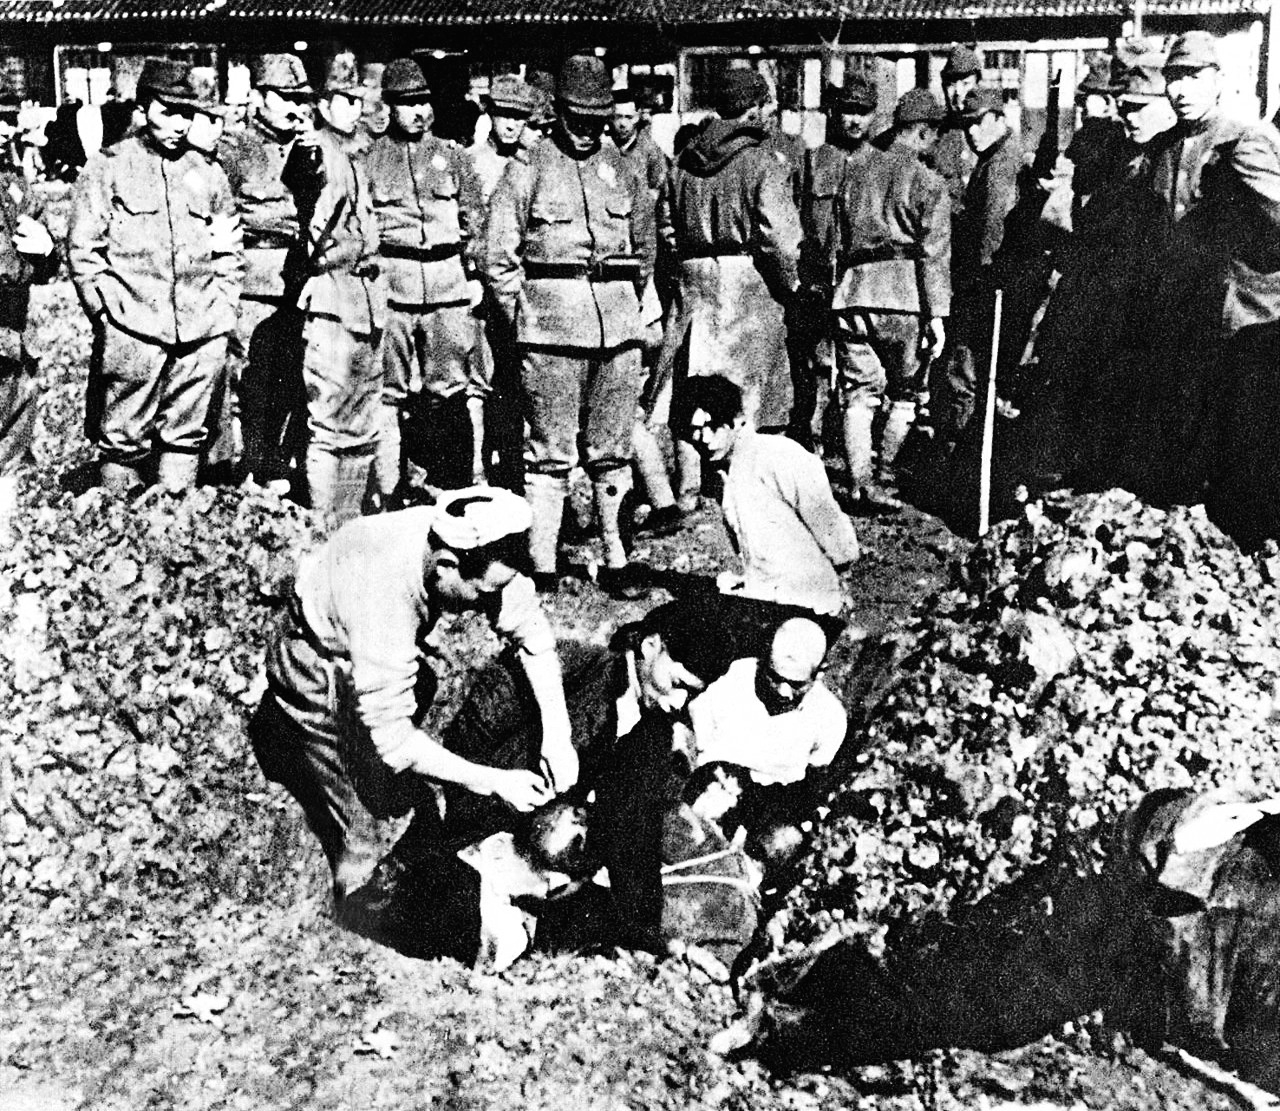 Datei:Chinese civilians to be buried alive.jpg